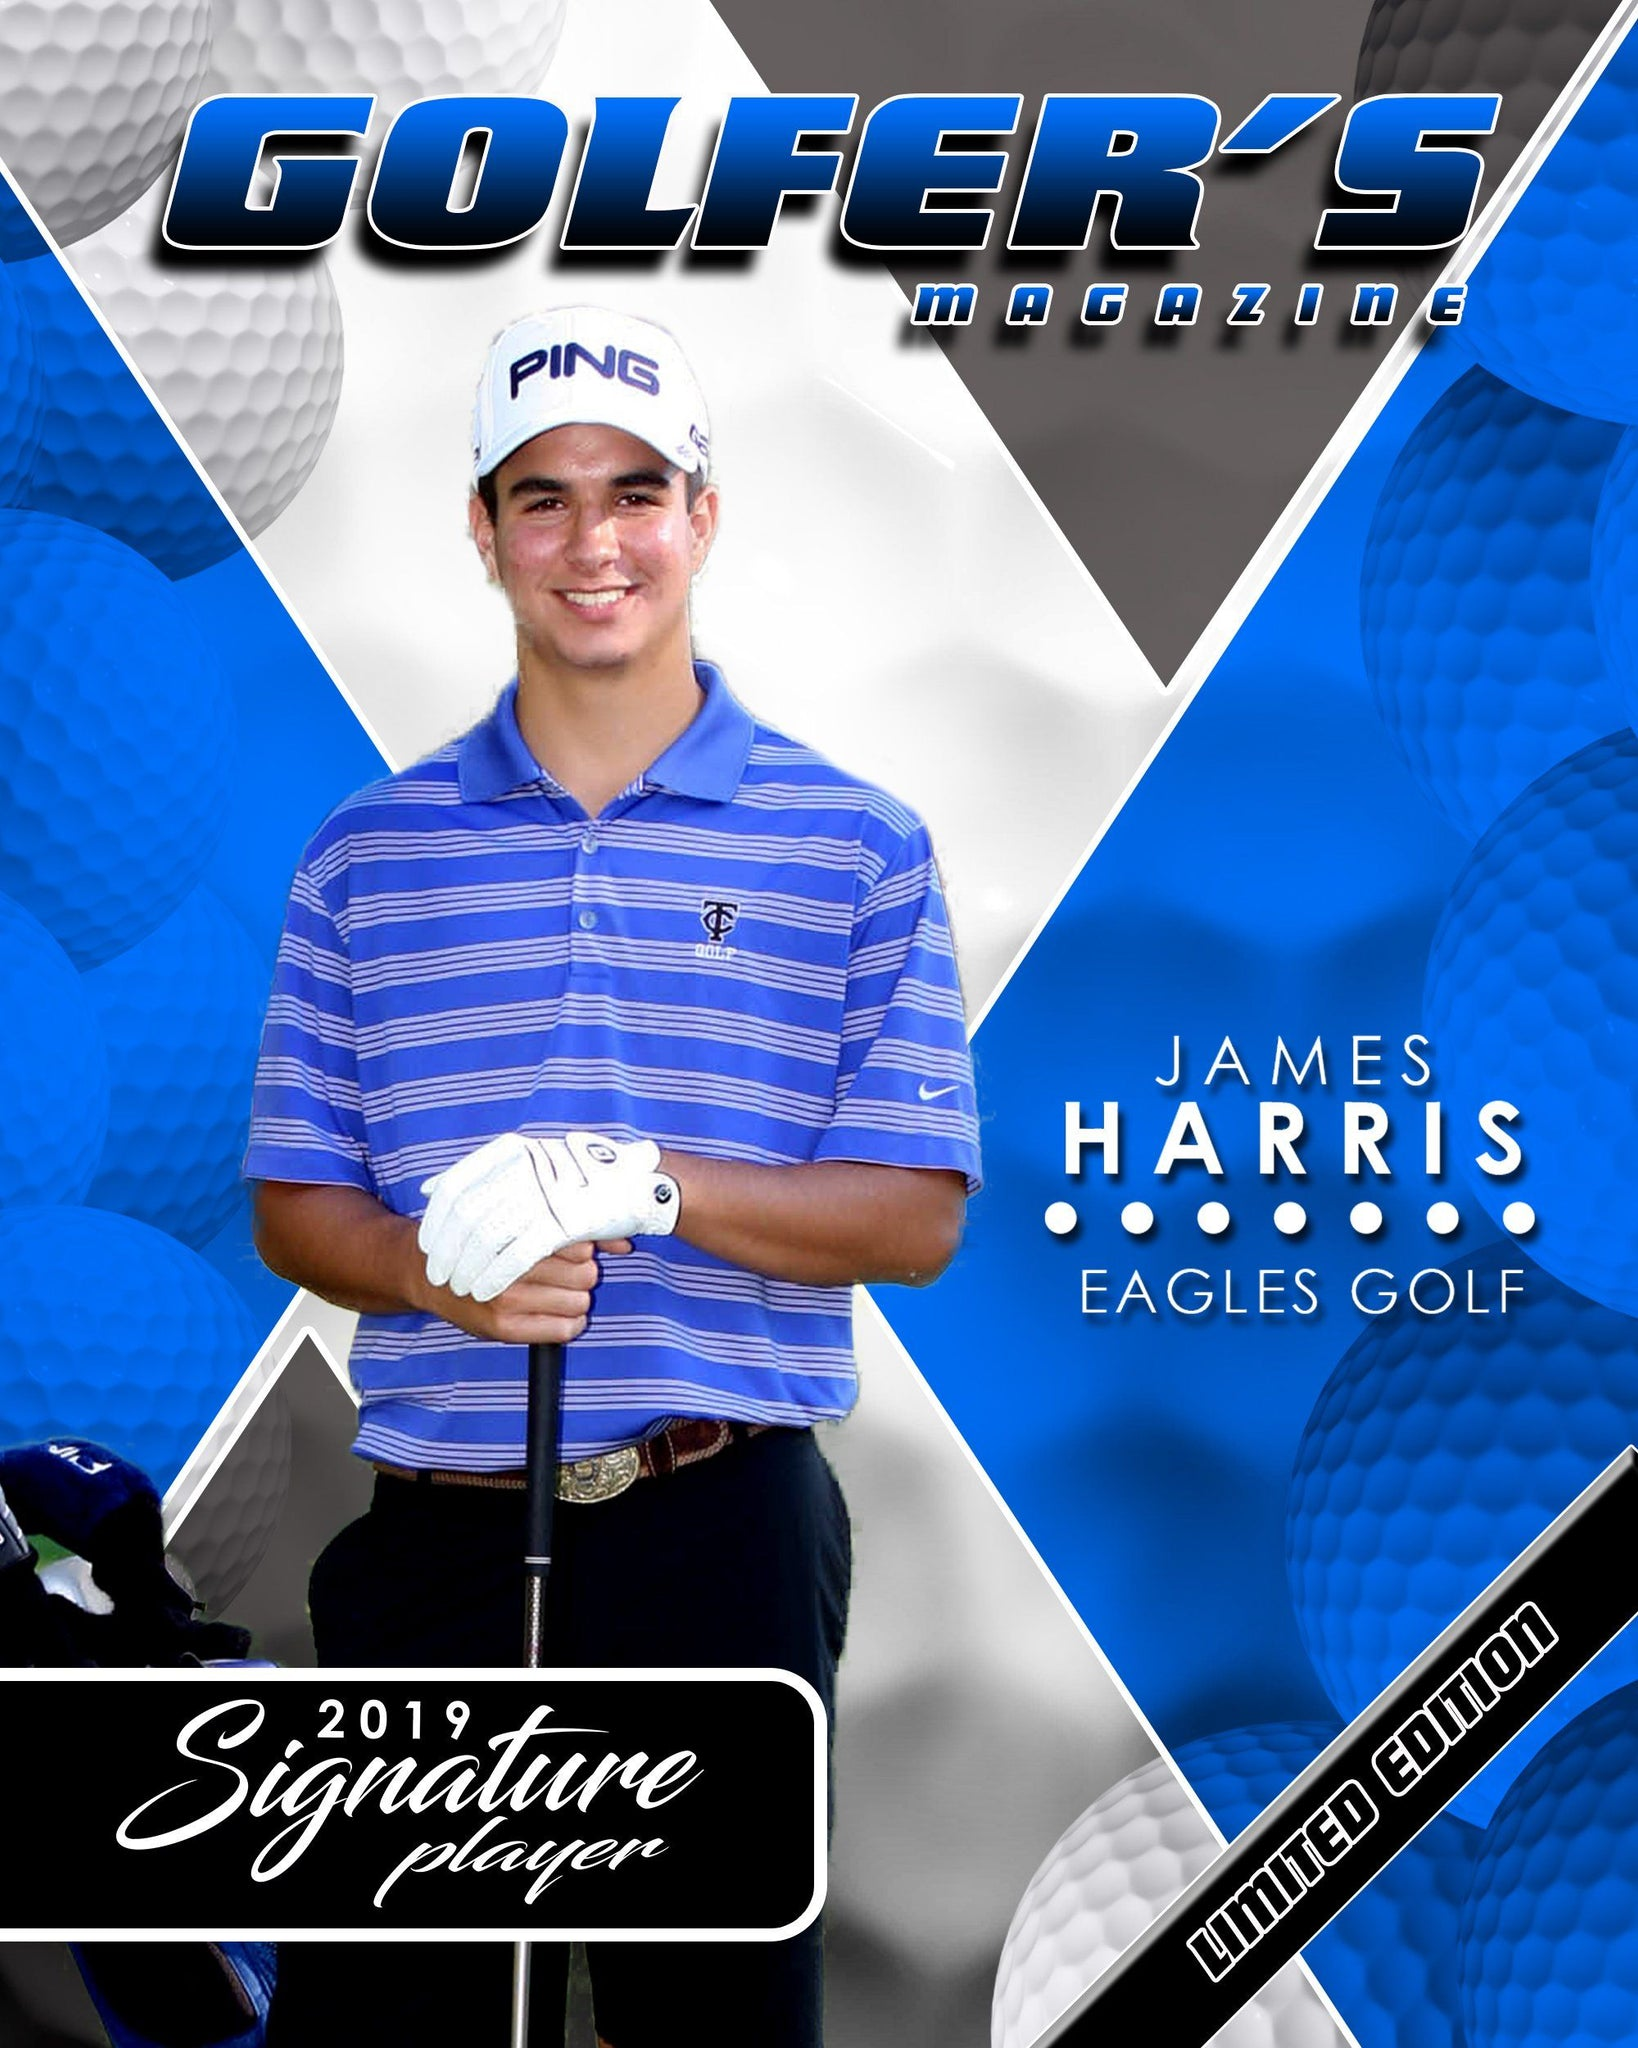 Signature Player - Golf - V2 - Extraction Magazine Cover Template-Photoshop Template - Photo Solutions